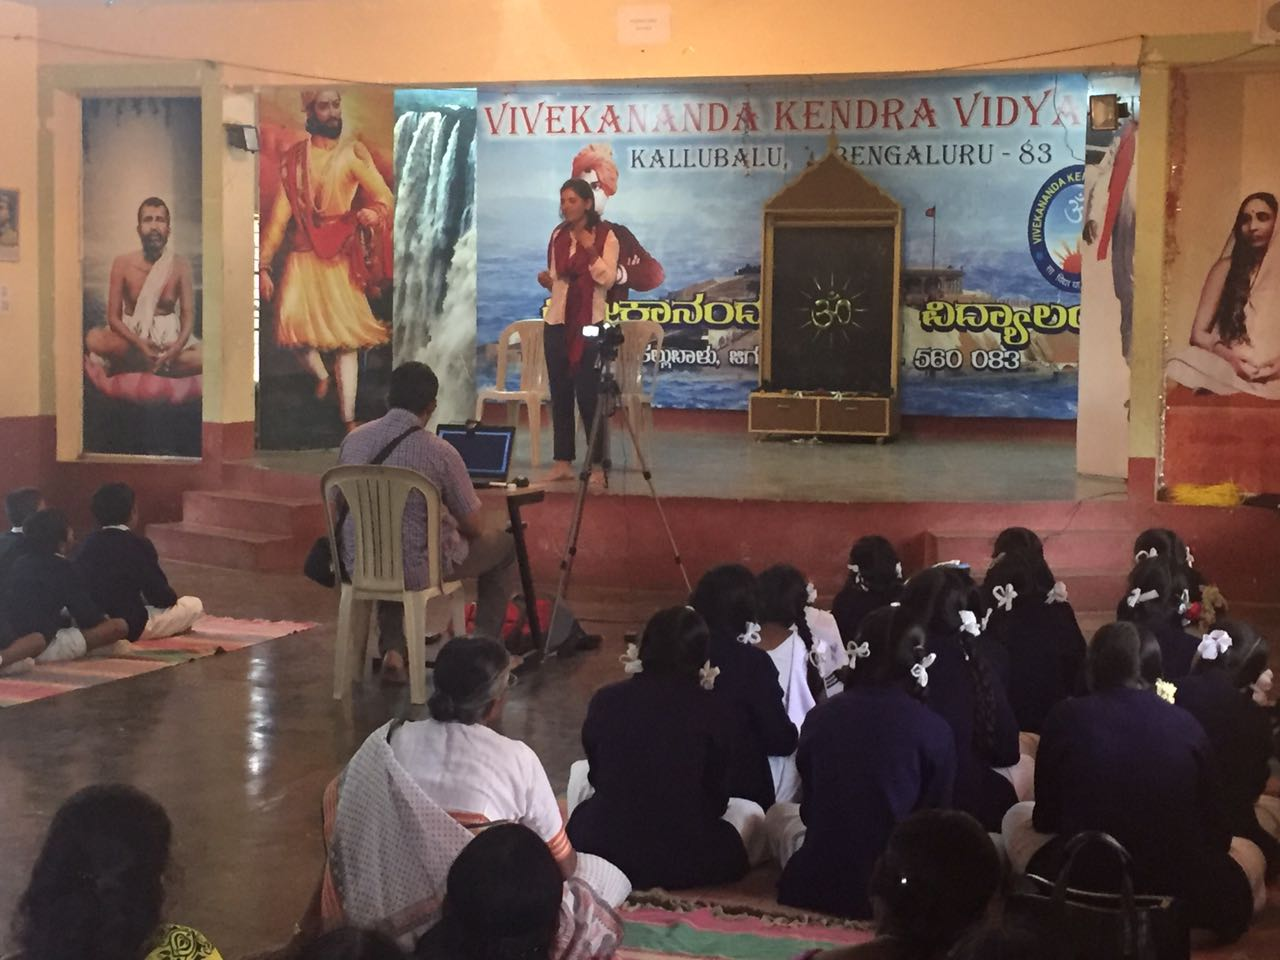 Adressing and inspiring- At Vivekananda Kendra